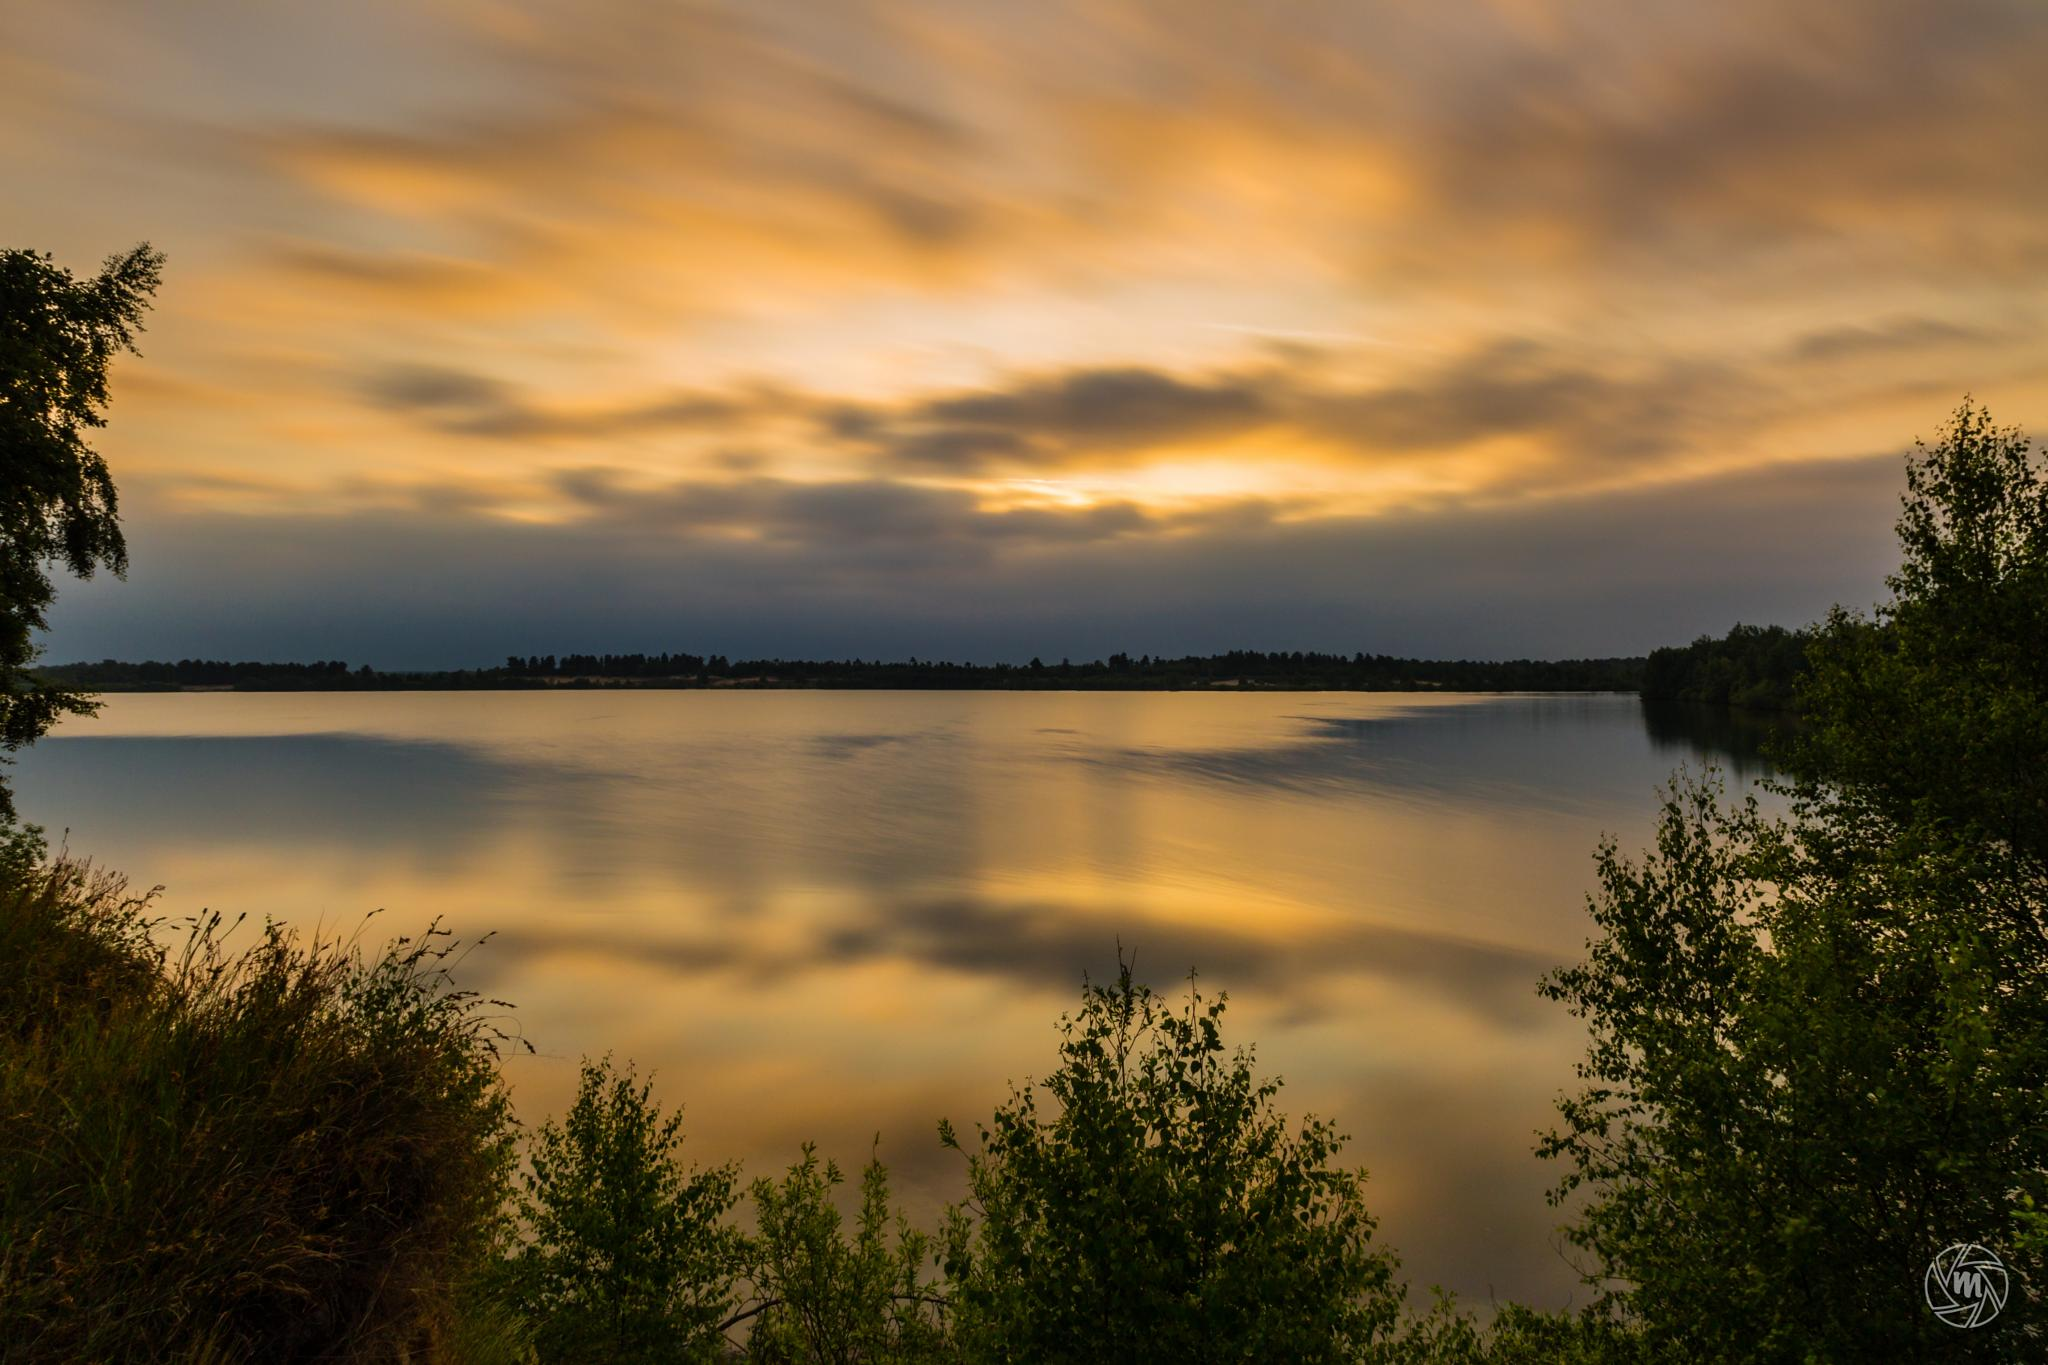 Cloudy Golden Reflections by William Mevissen